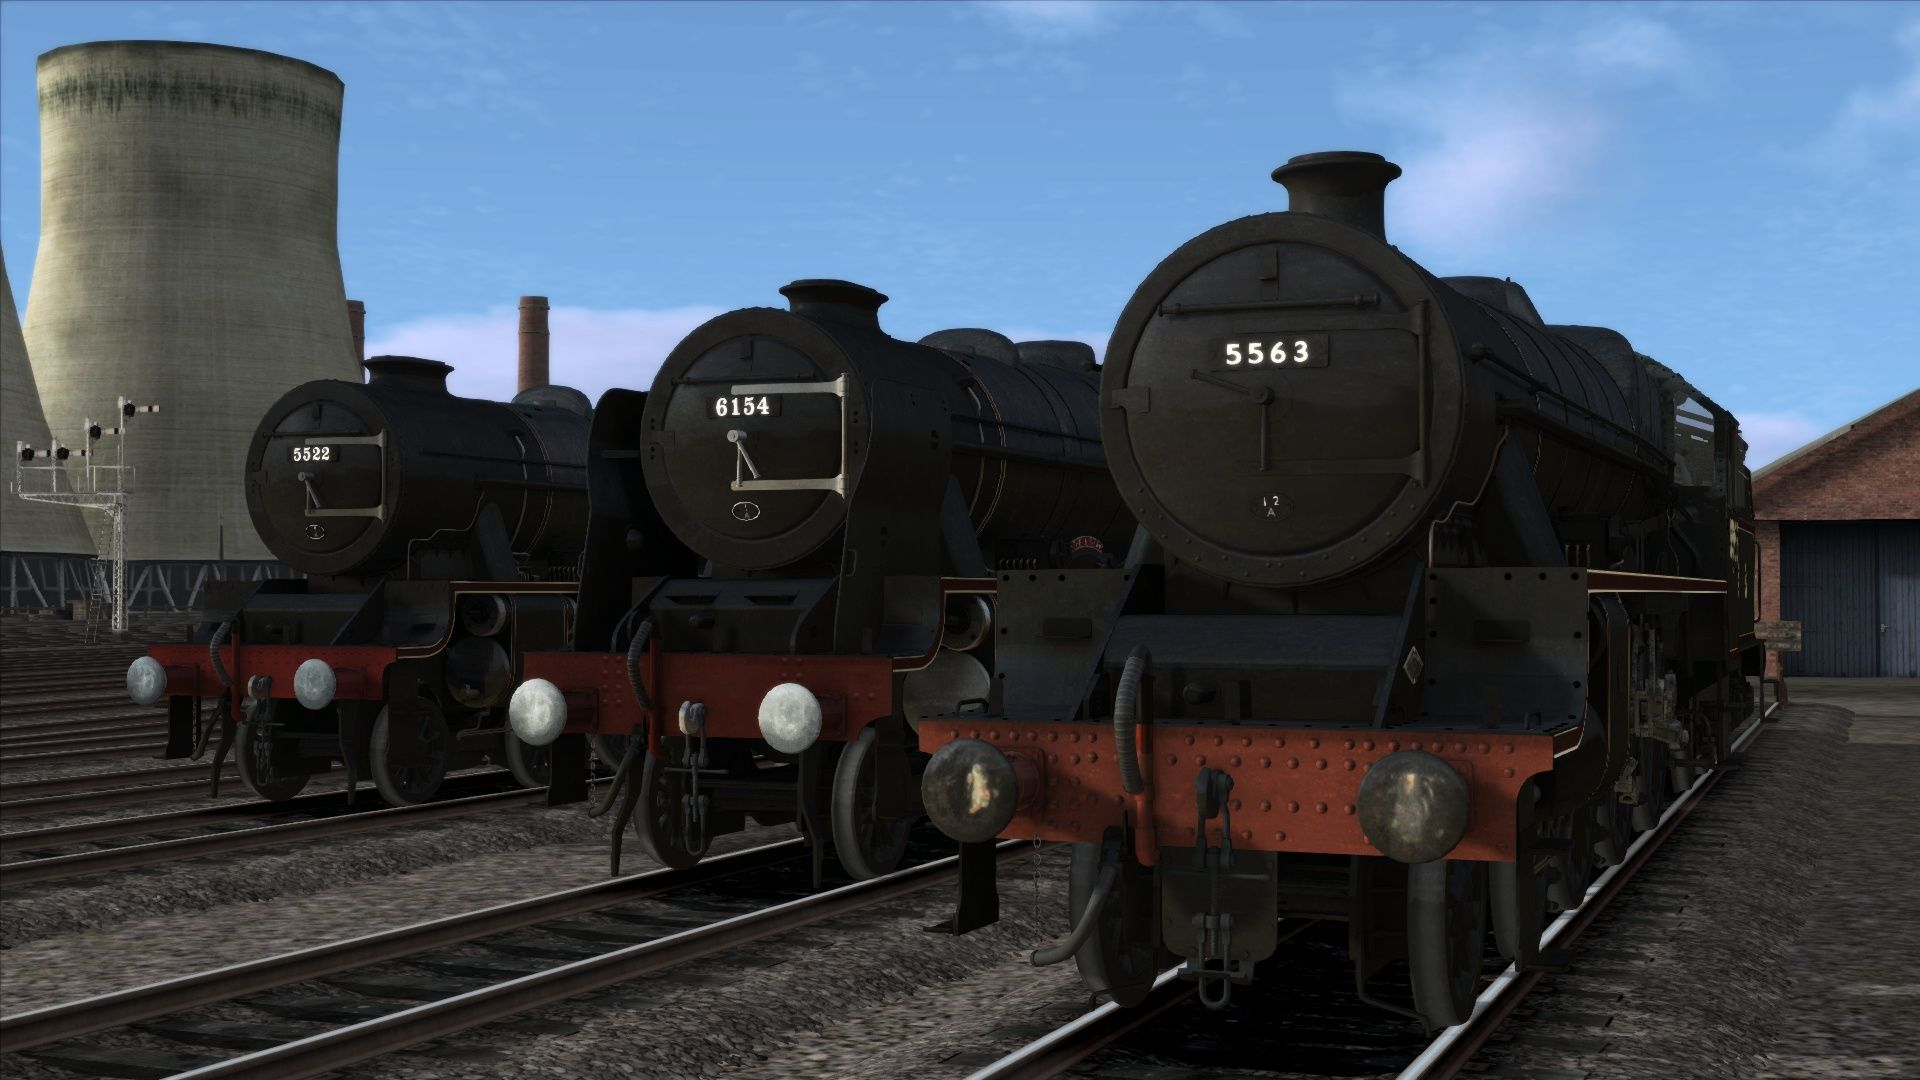 Screenshot_Weardale and Teesdale Rail Network_54.52513--1.54428_19-30-38